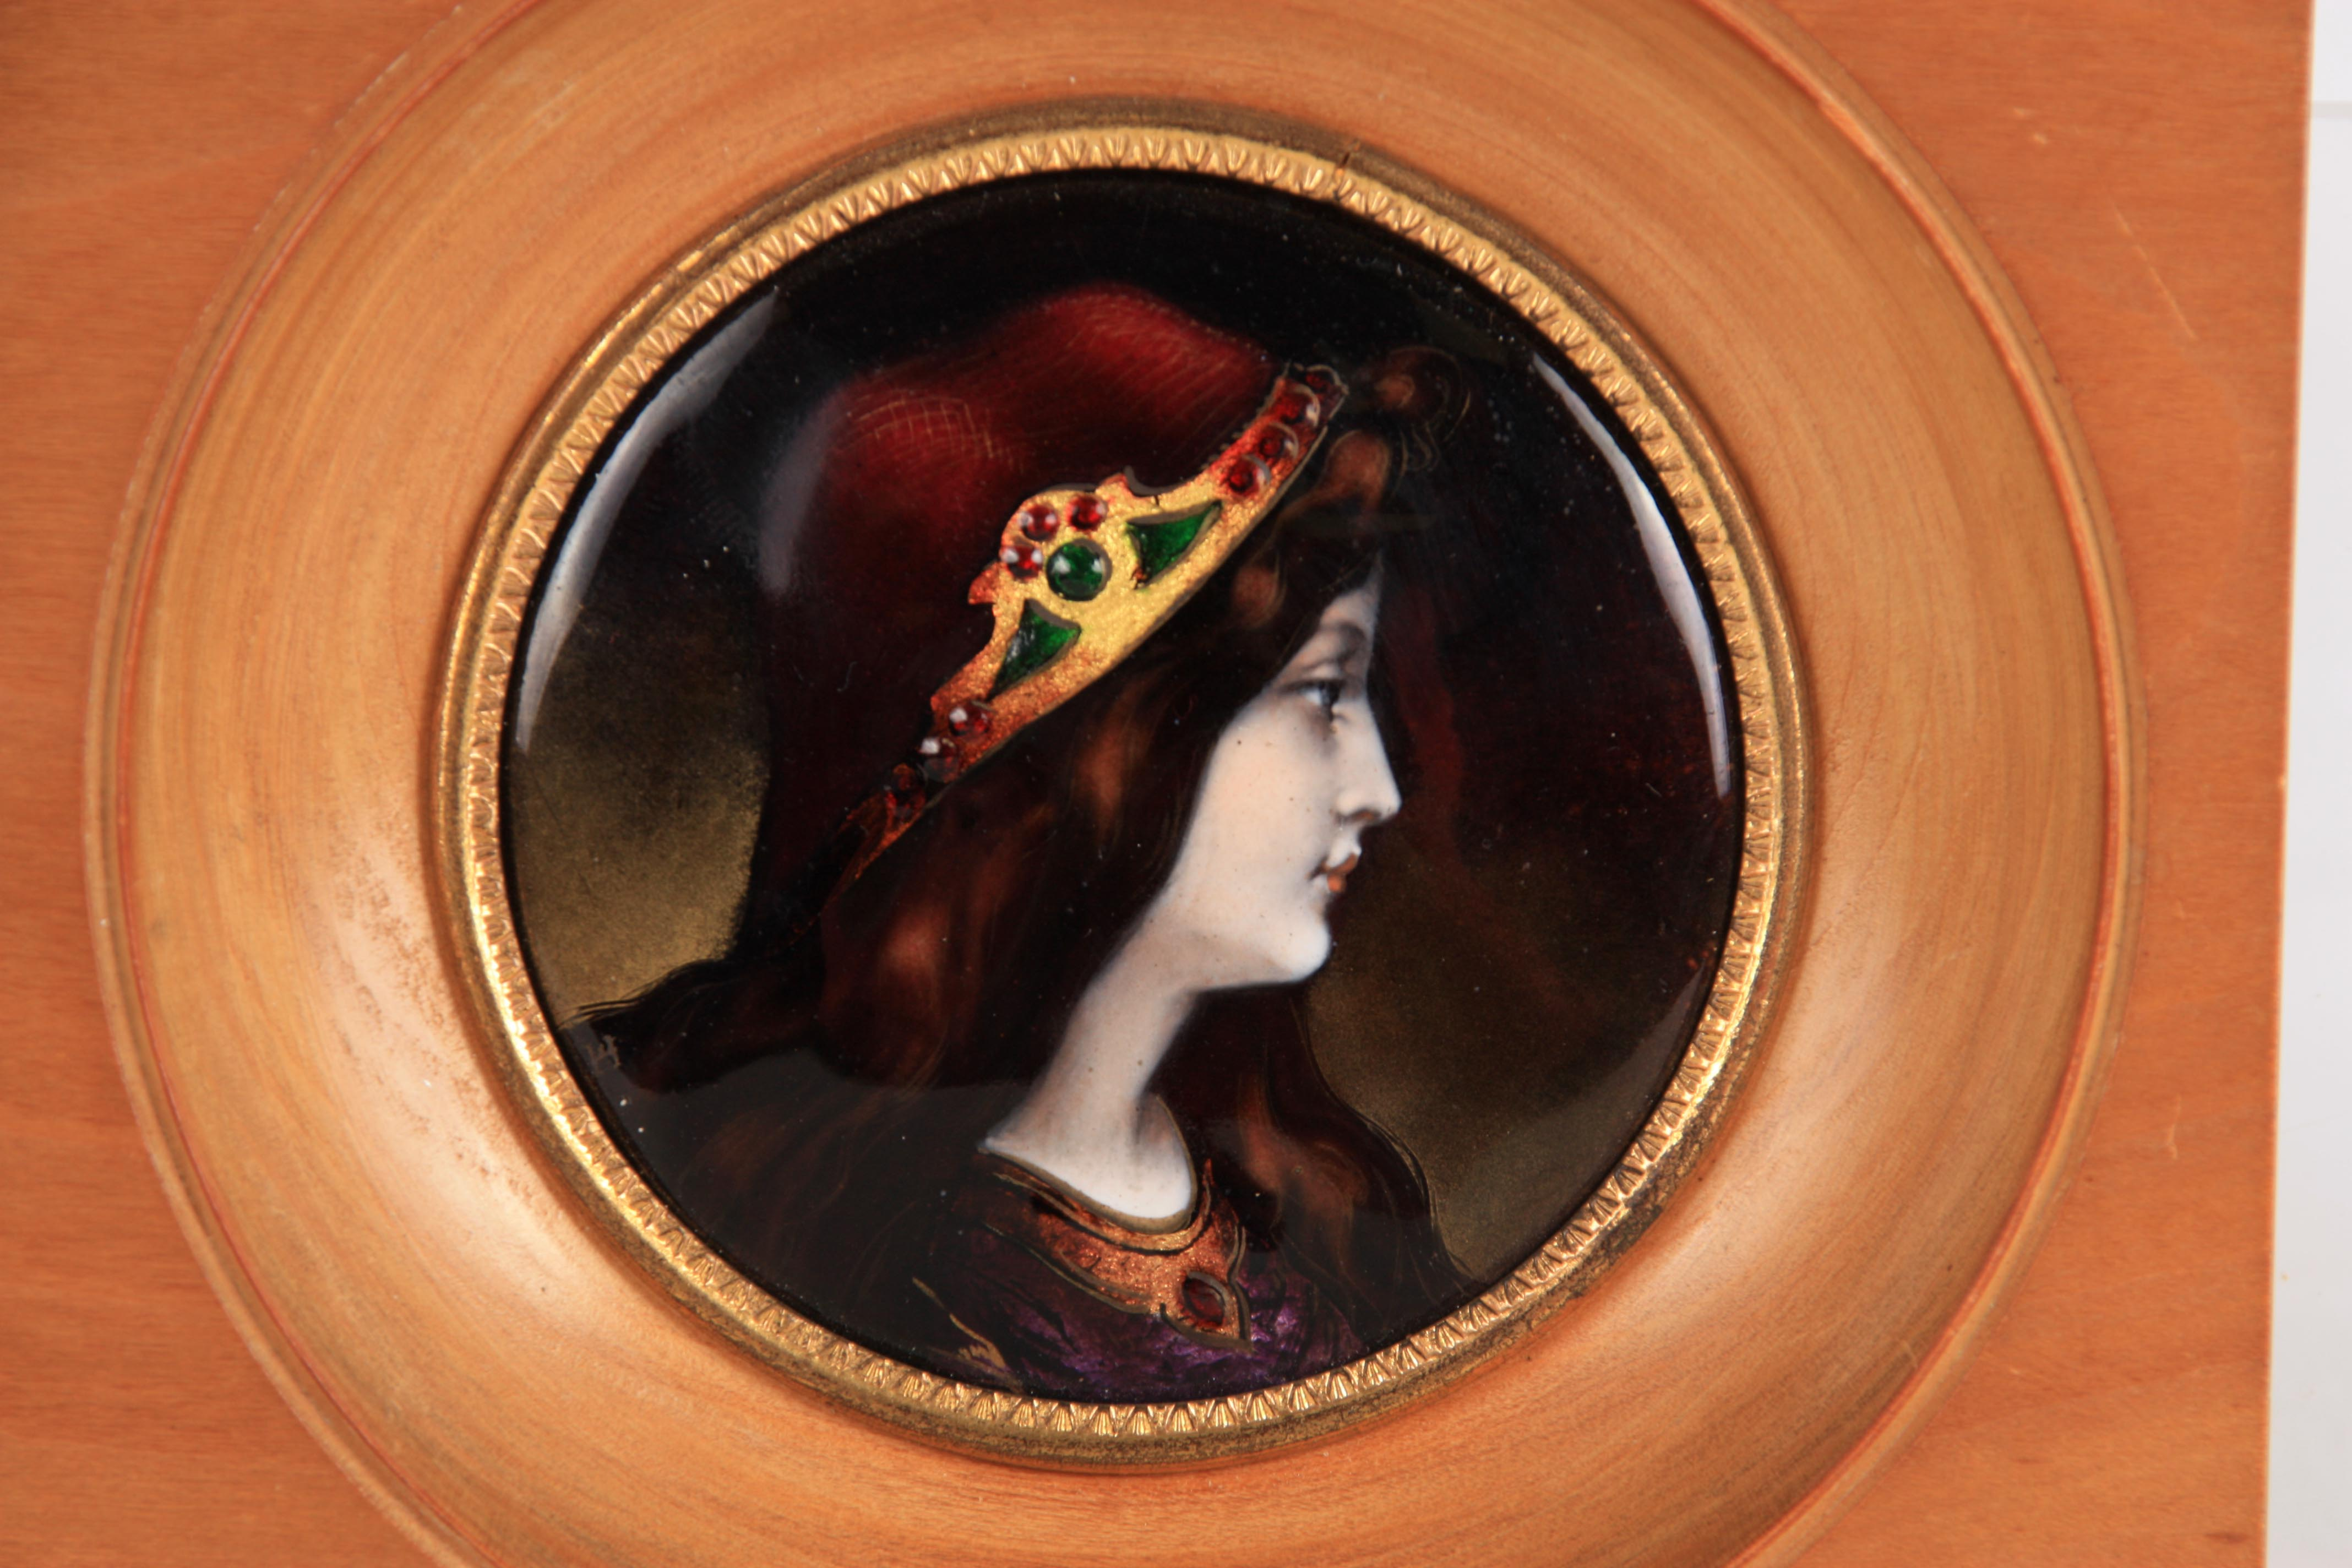 A PRE RAPHAELITE STYLE EARLY 20TH CENTURY LIMOGES ENAMEL CONVEX PANEL depicting the portrait of a - Image 3 of 4